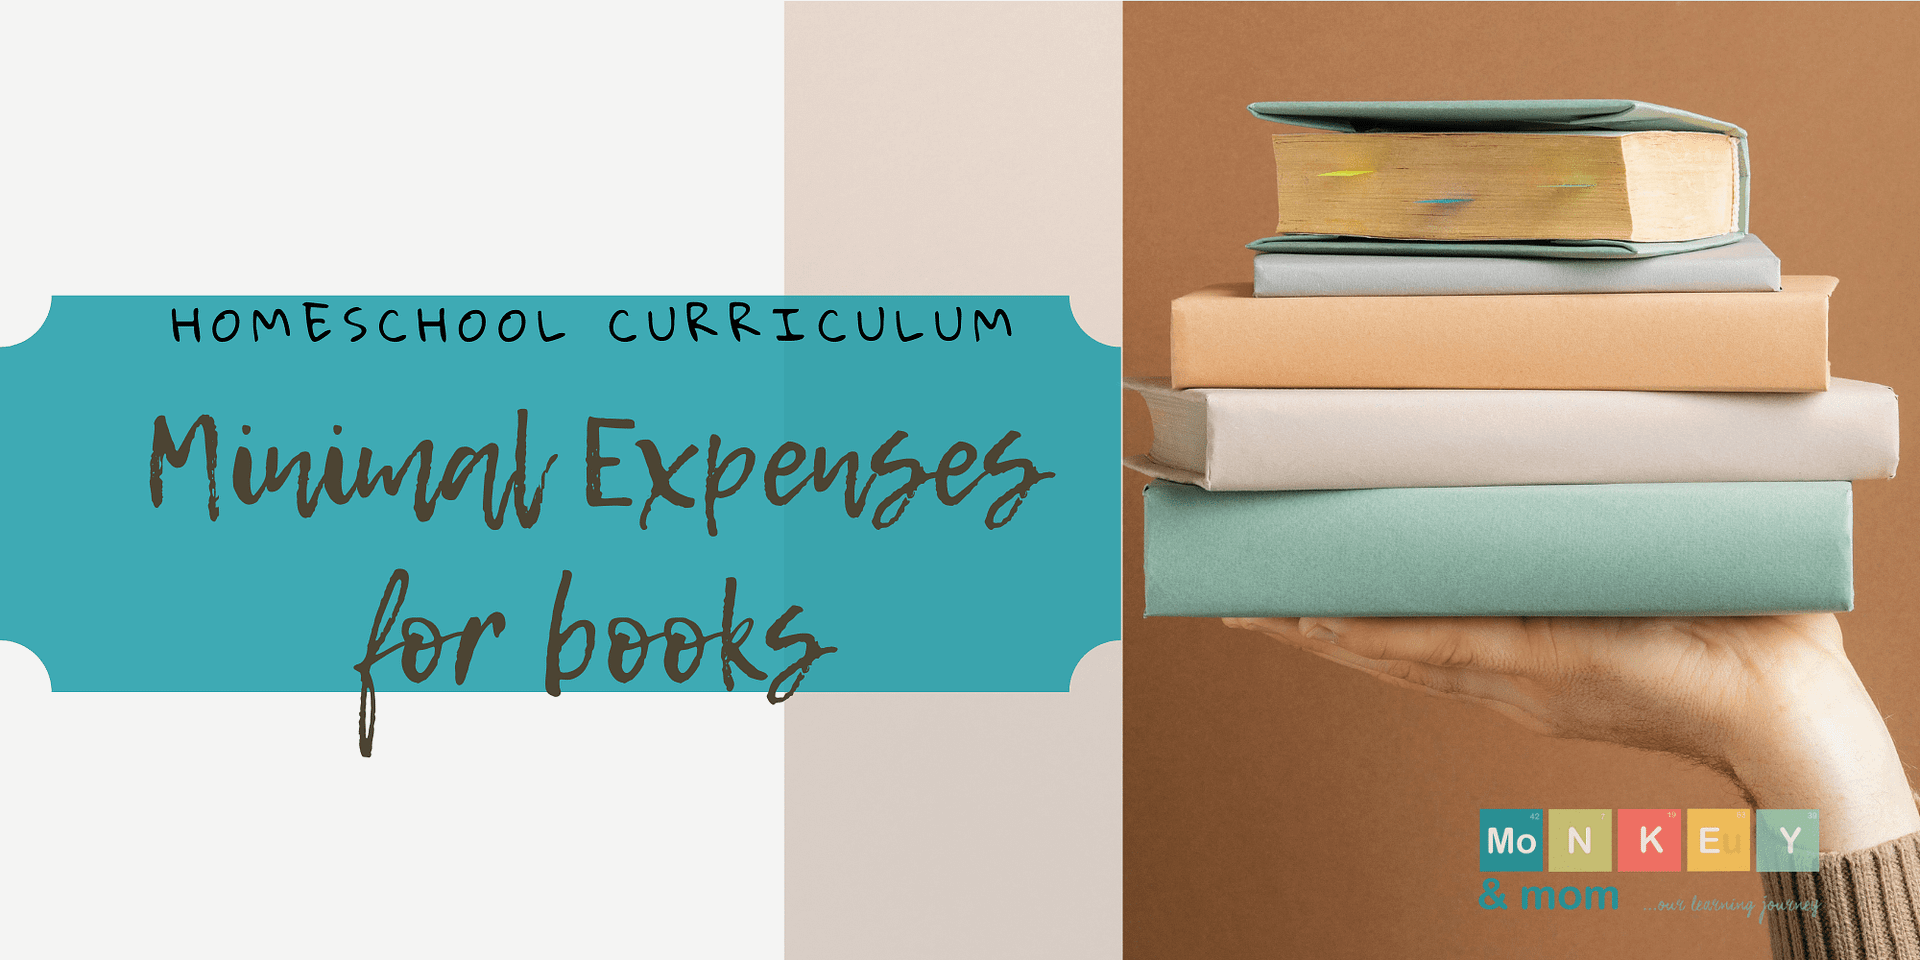 Minimal Expenses Homeschool